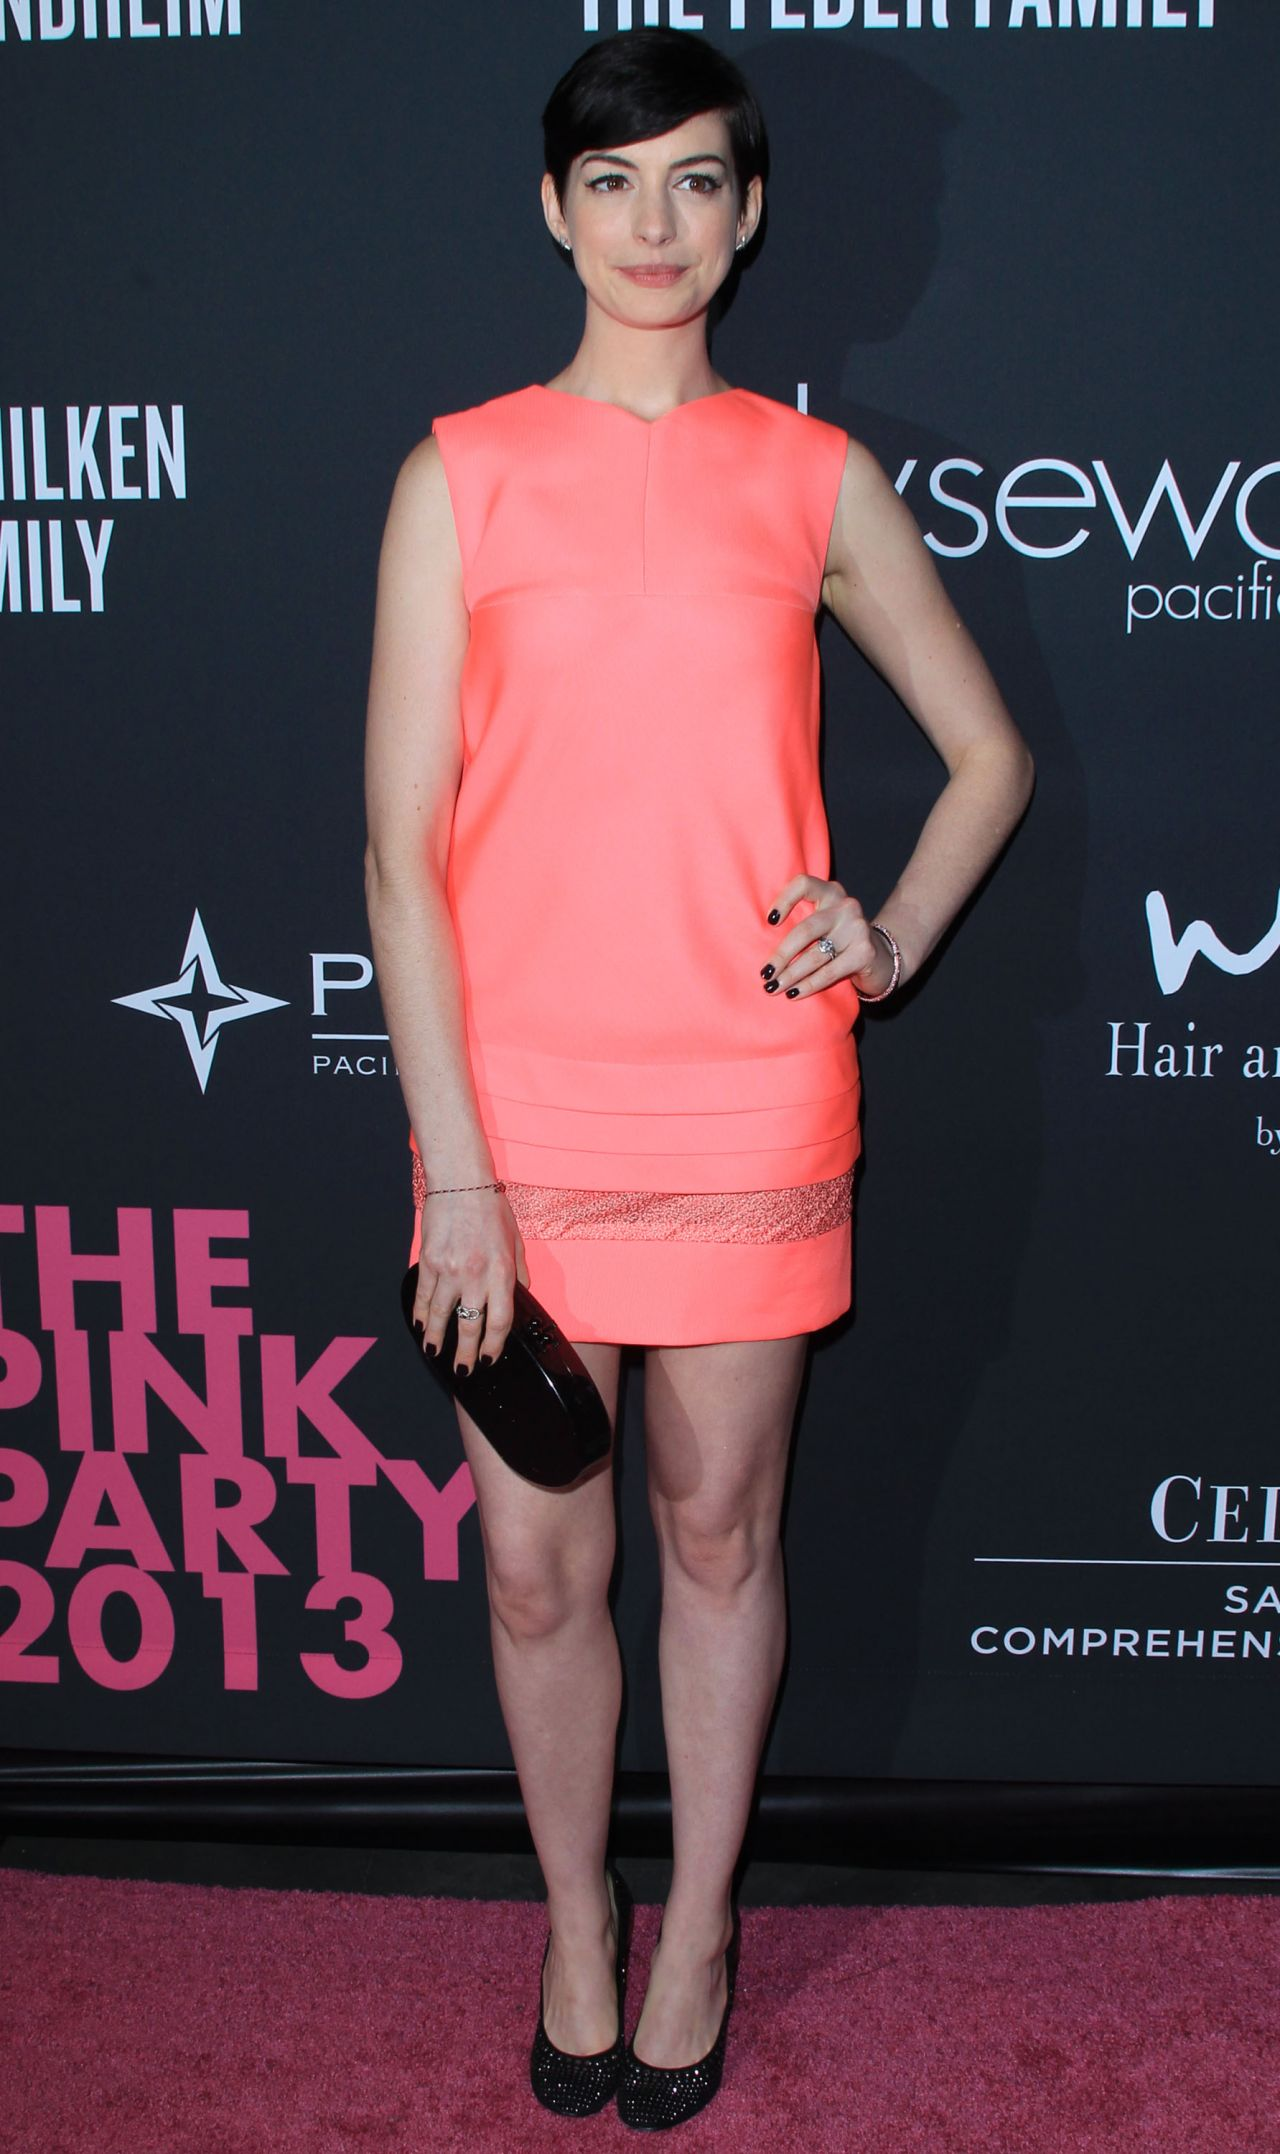 Anne Hathaway in Pink - Elyse Walker Presents The Pink Party 2013